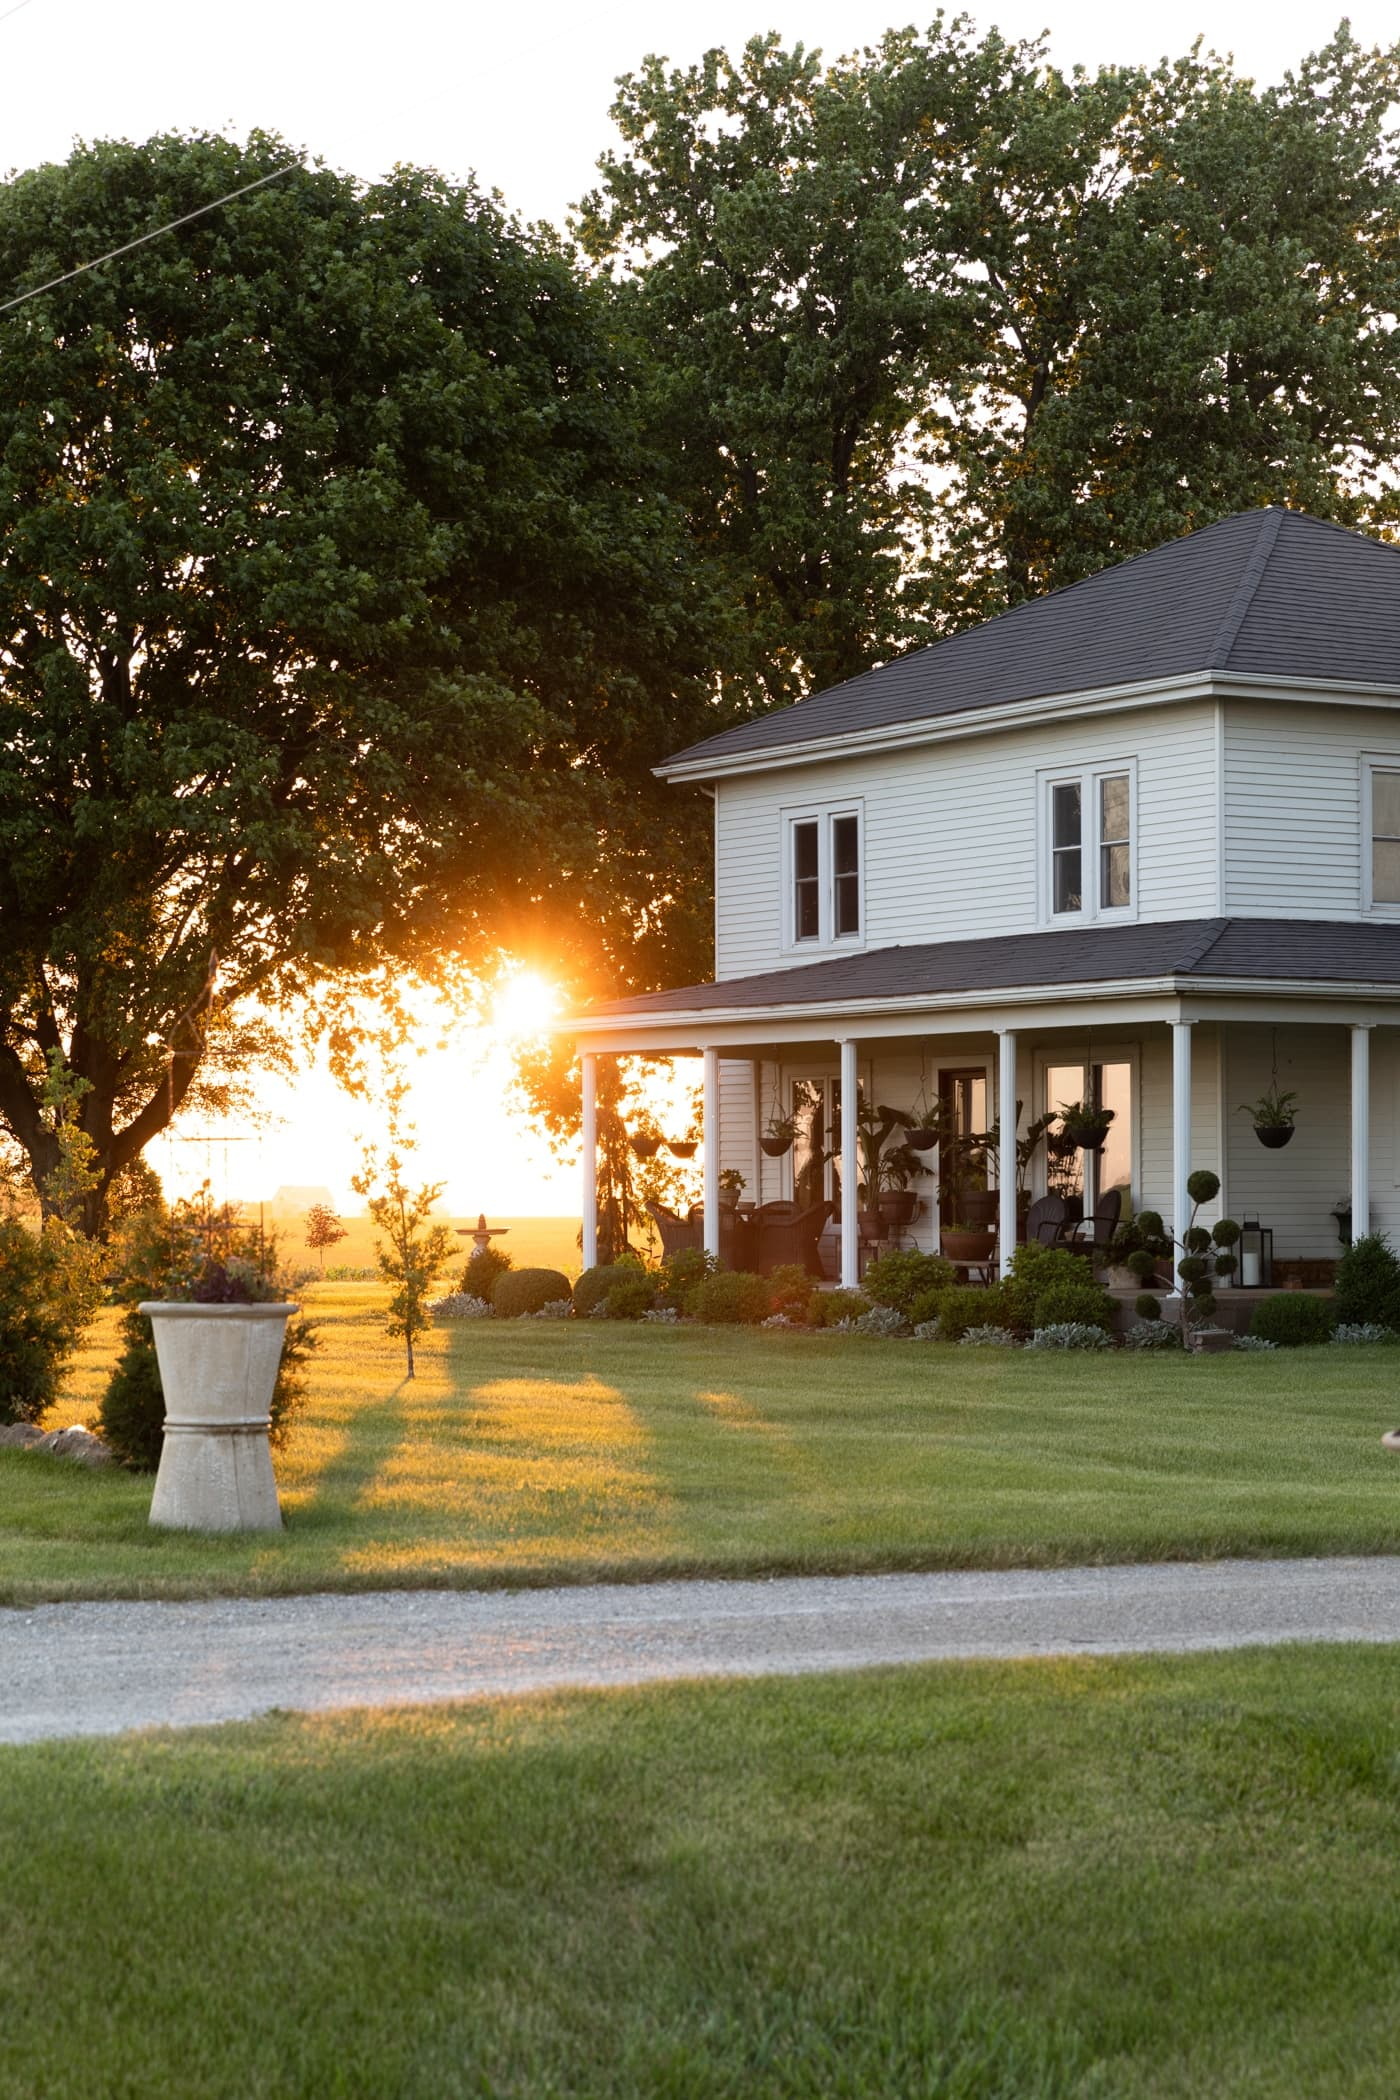 Exterior of white farmhouse with large front door and double windows with sun setting in background